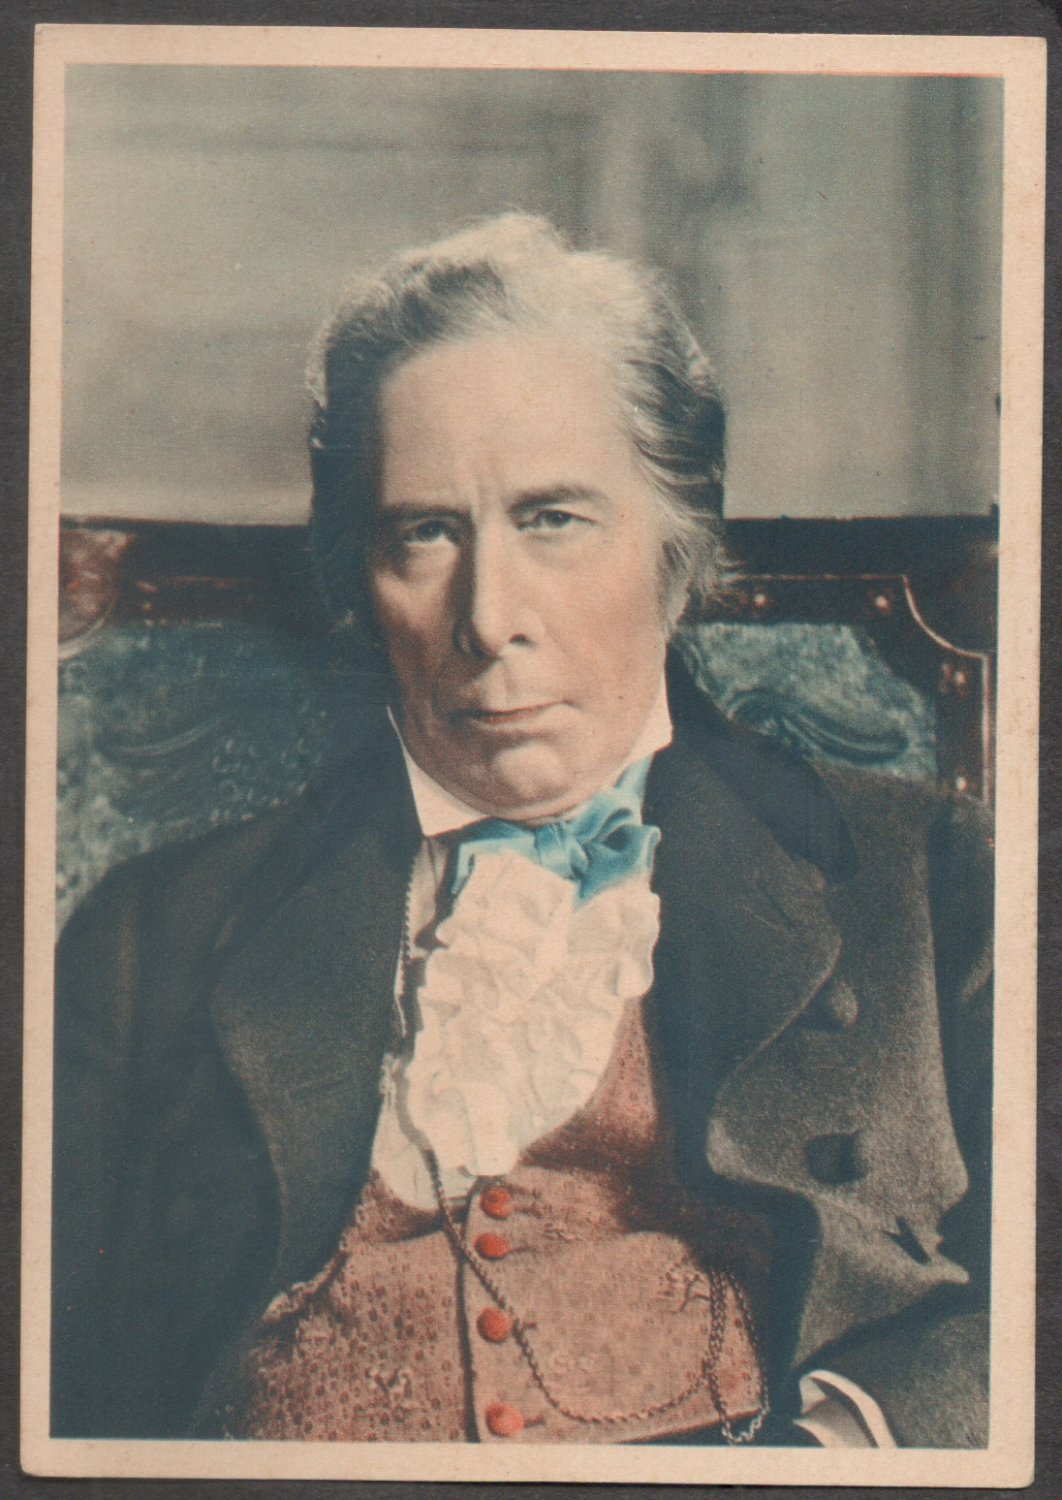 GODFREY PHILLIPS George Arliss MINT CARD